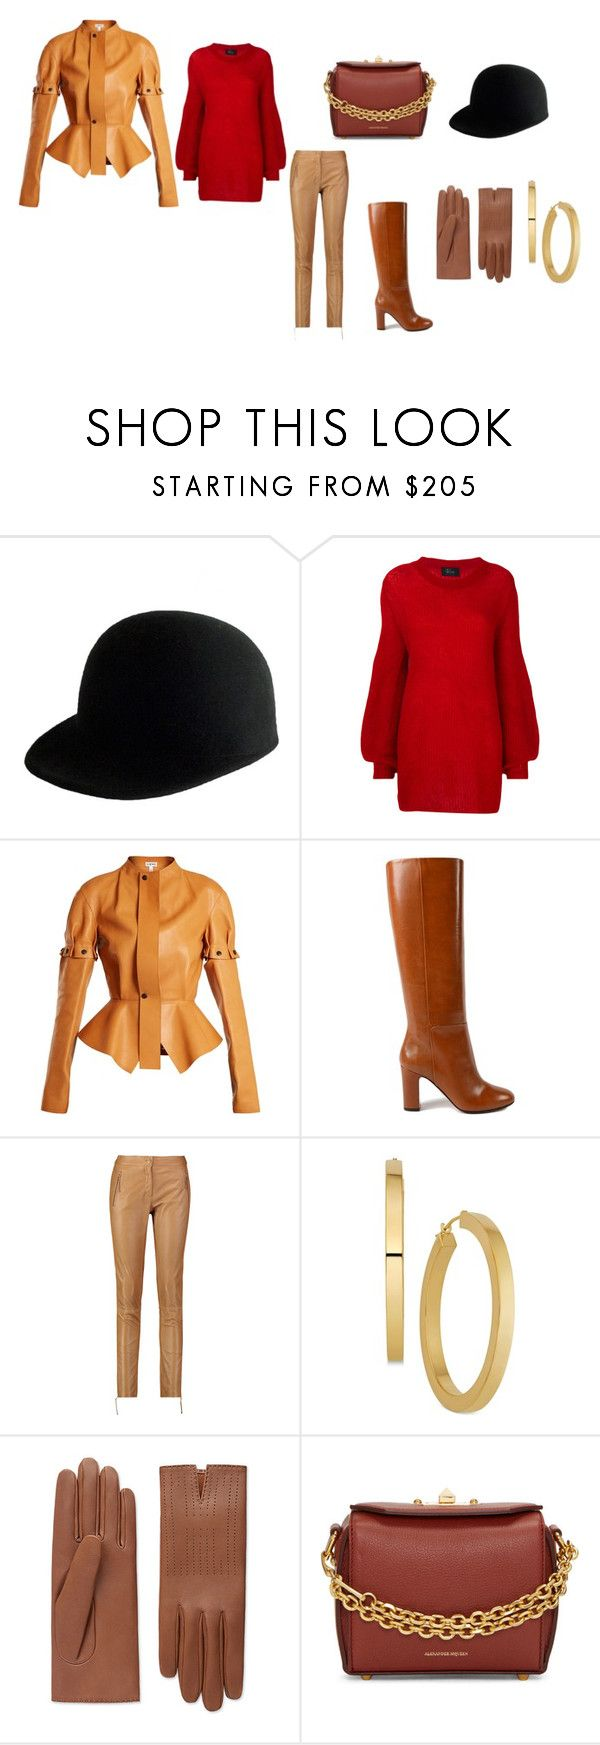 """Untitled #32"" by dadulla on Polyvore featuring Janessa Leone, Lost & Found, Loewe, Aquazzura, Roberto Cavalli and Alexander McQueen"